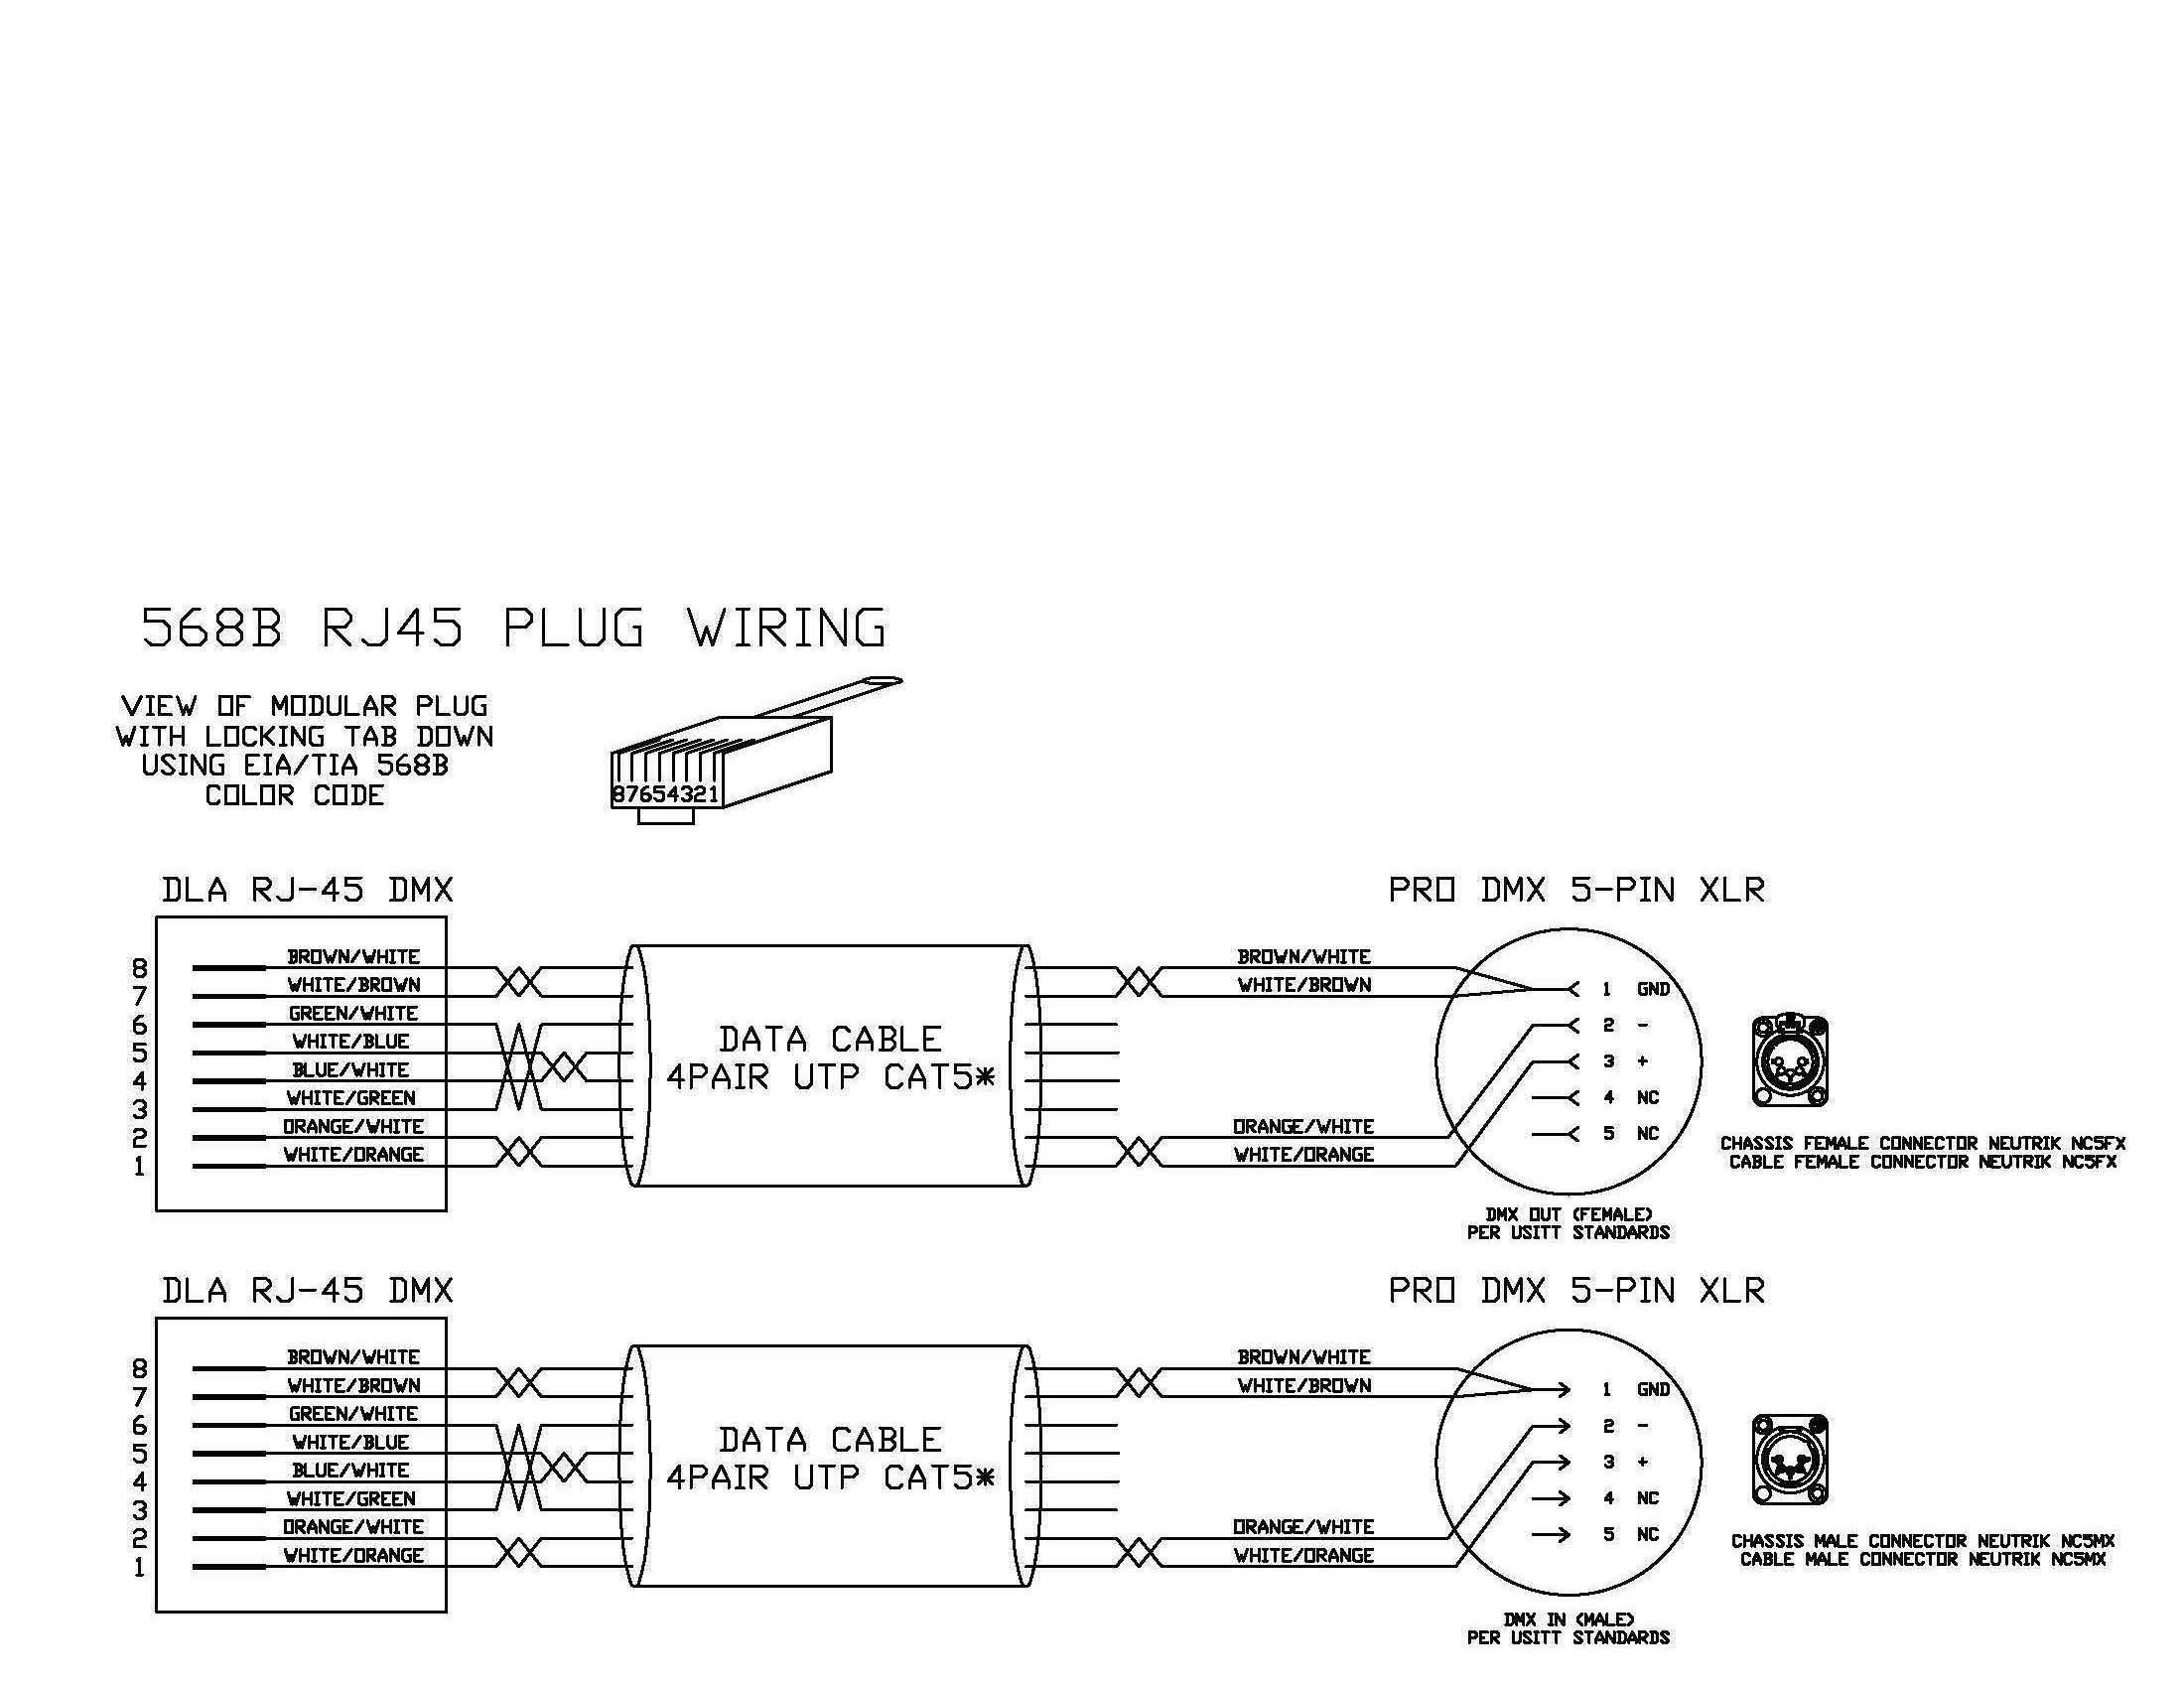 Xlr To Rj45 Wiring Diagram  Xlr  Electrical Wiring Diagrams